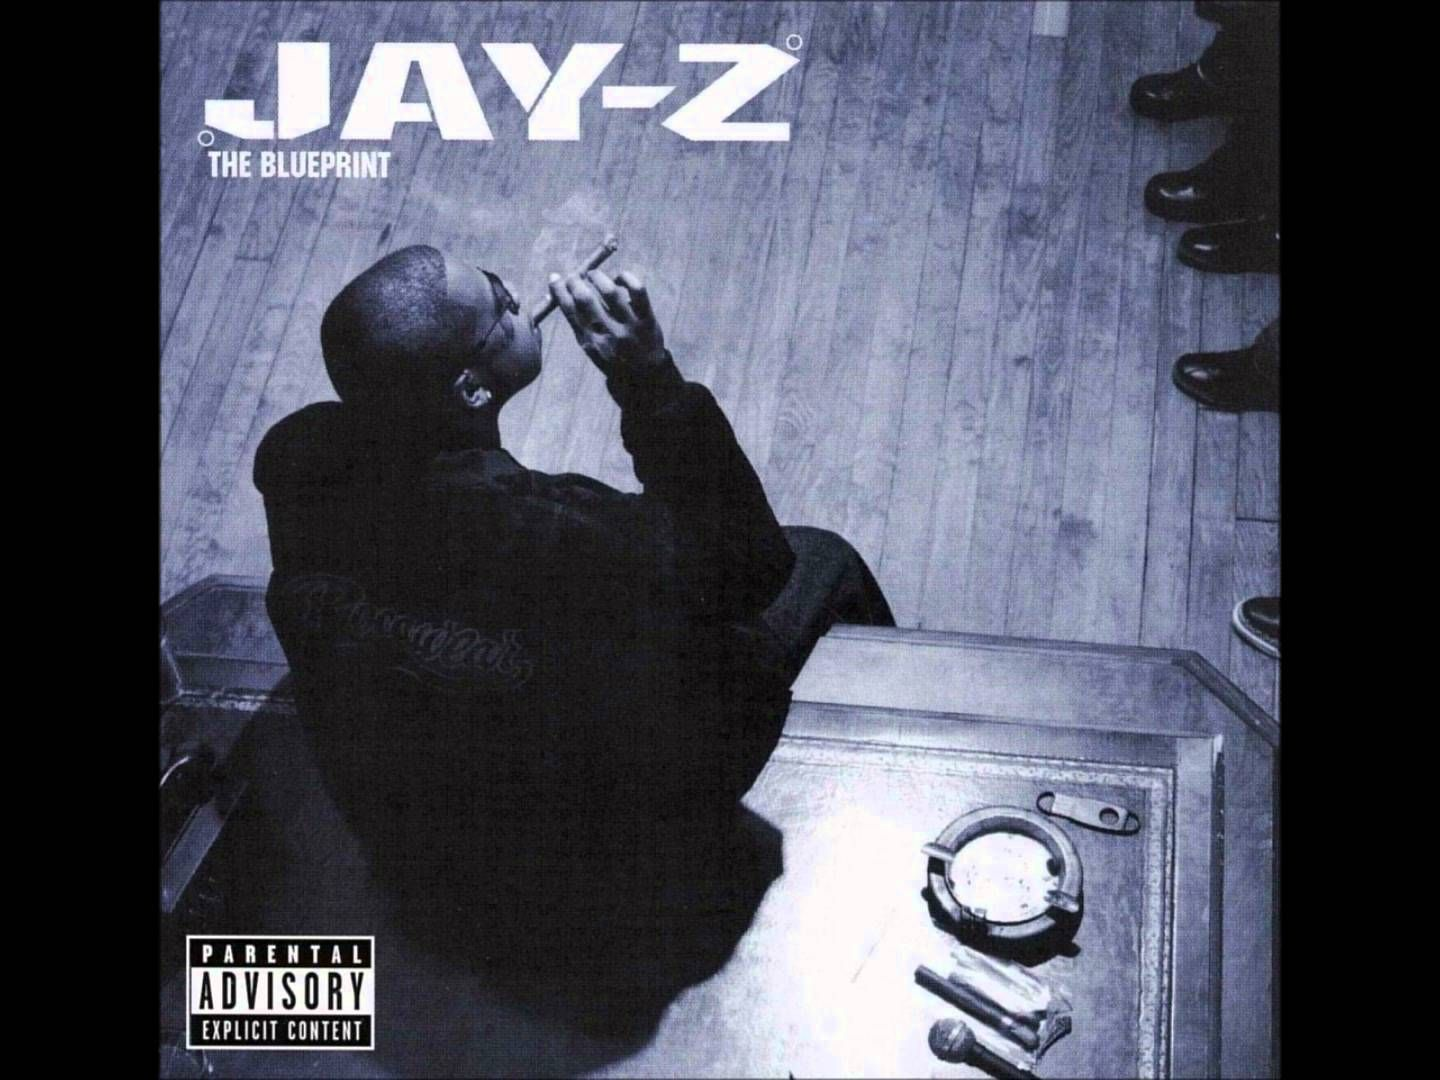 Jay z the blueprint the masterpiece full album truth jay z the blueprint the masterpiece full album malvernweather Image collections